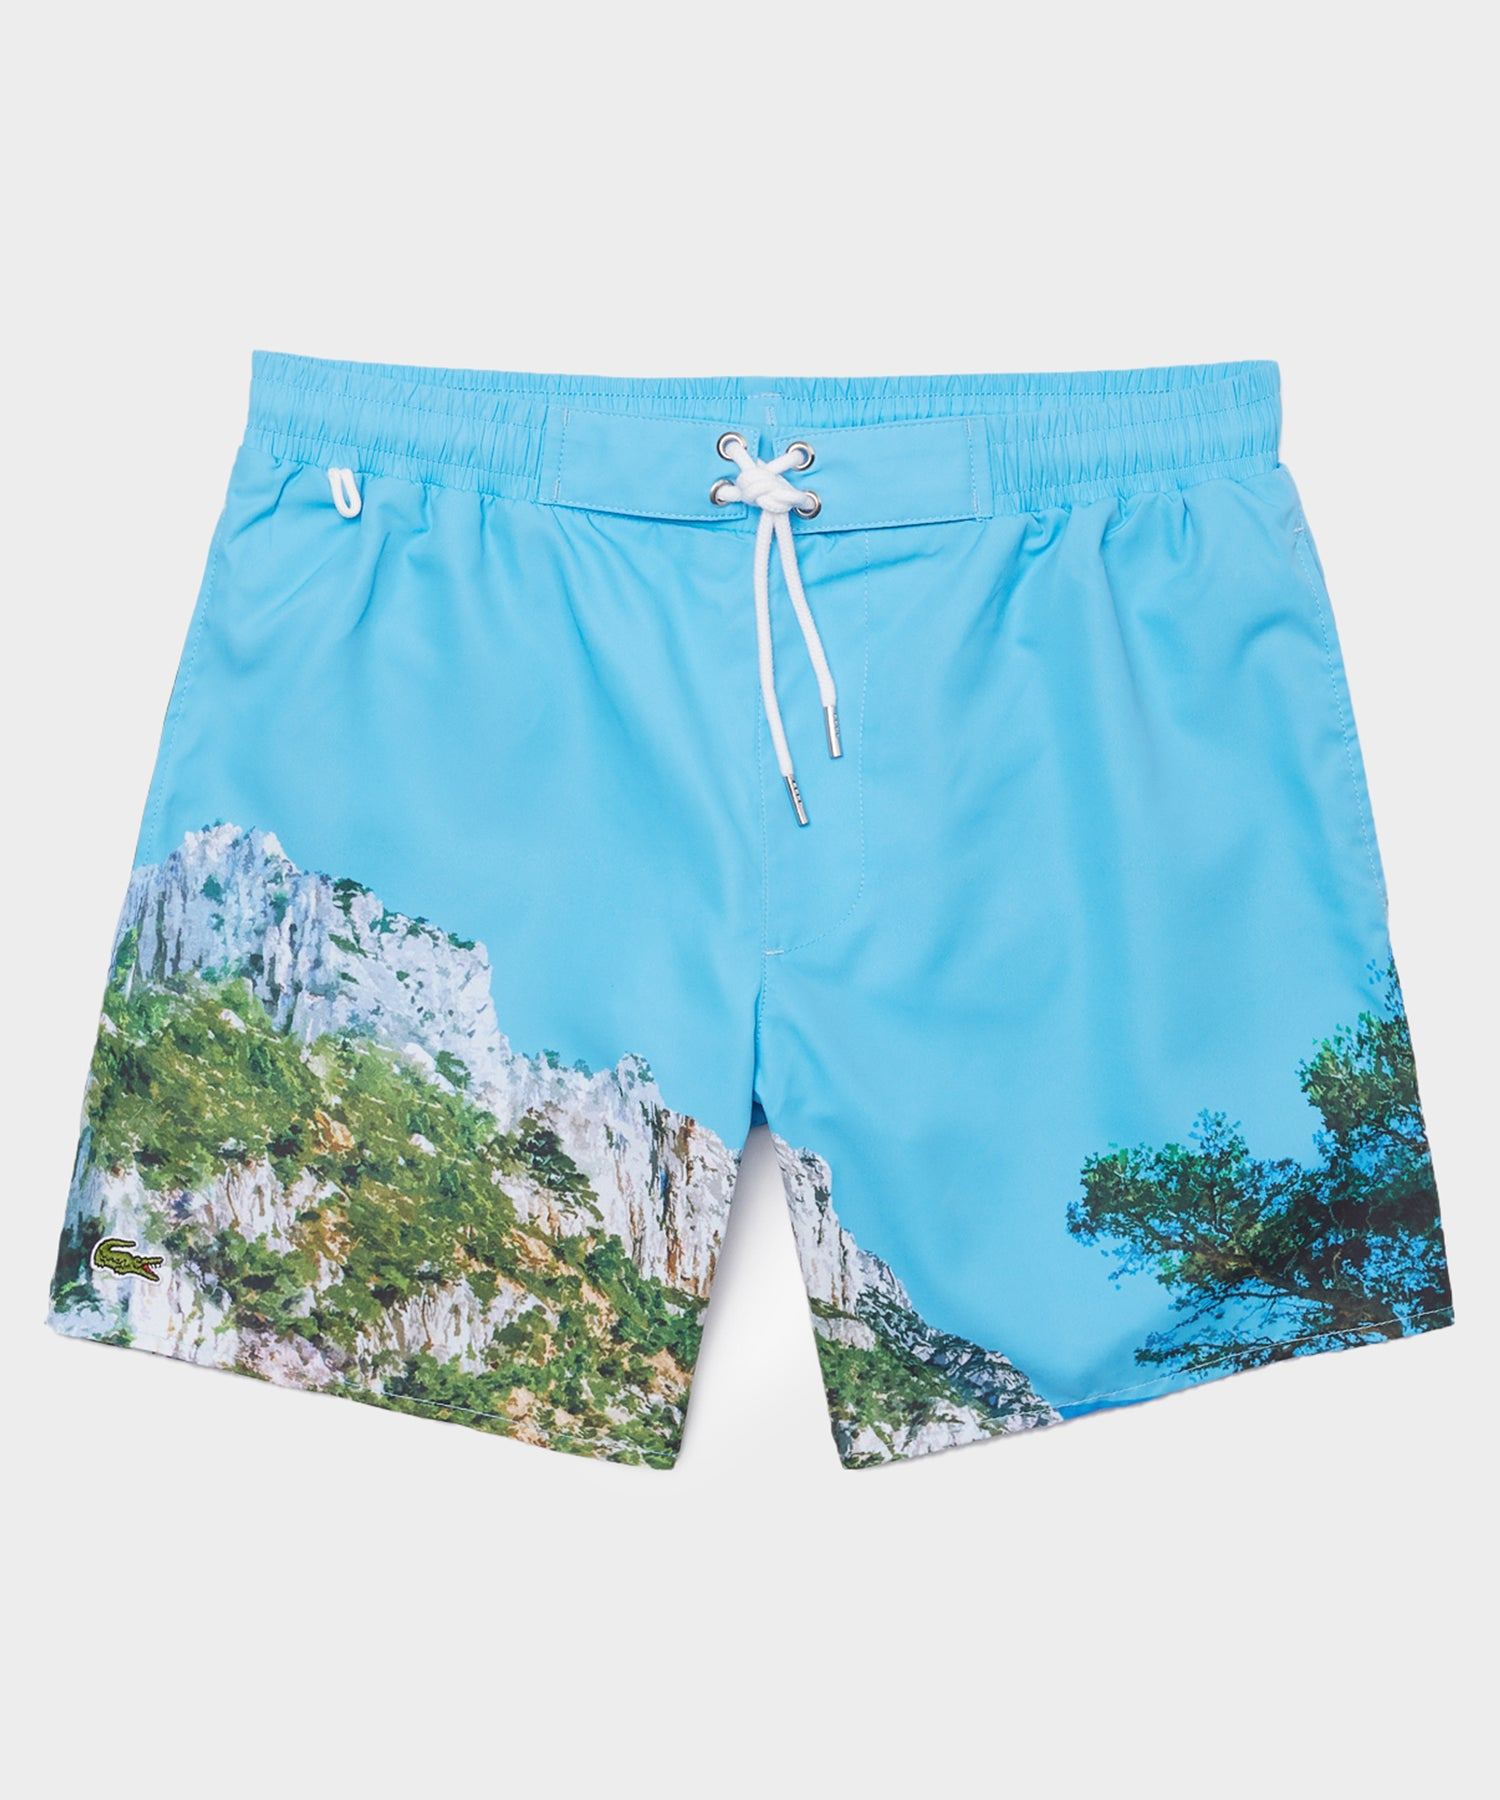 Lacoste Ibiza Graphic Printed Swim Trunks